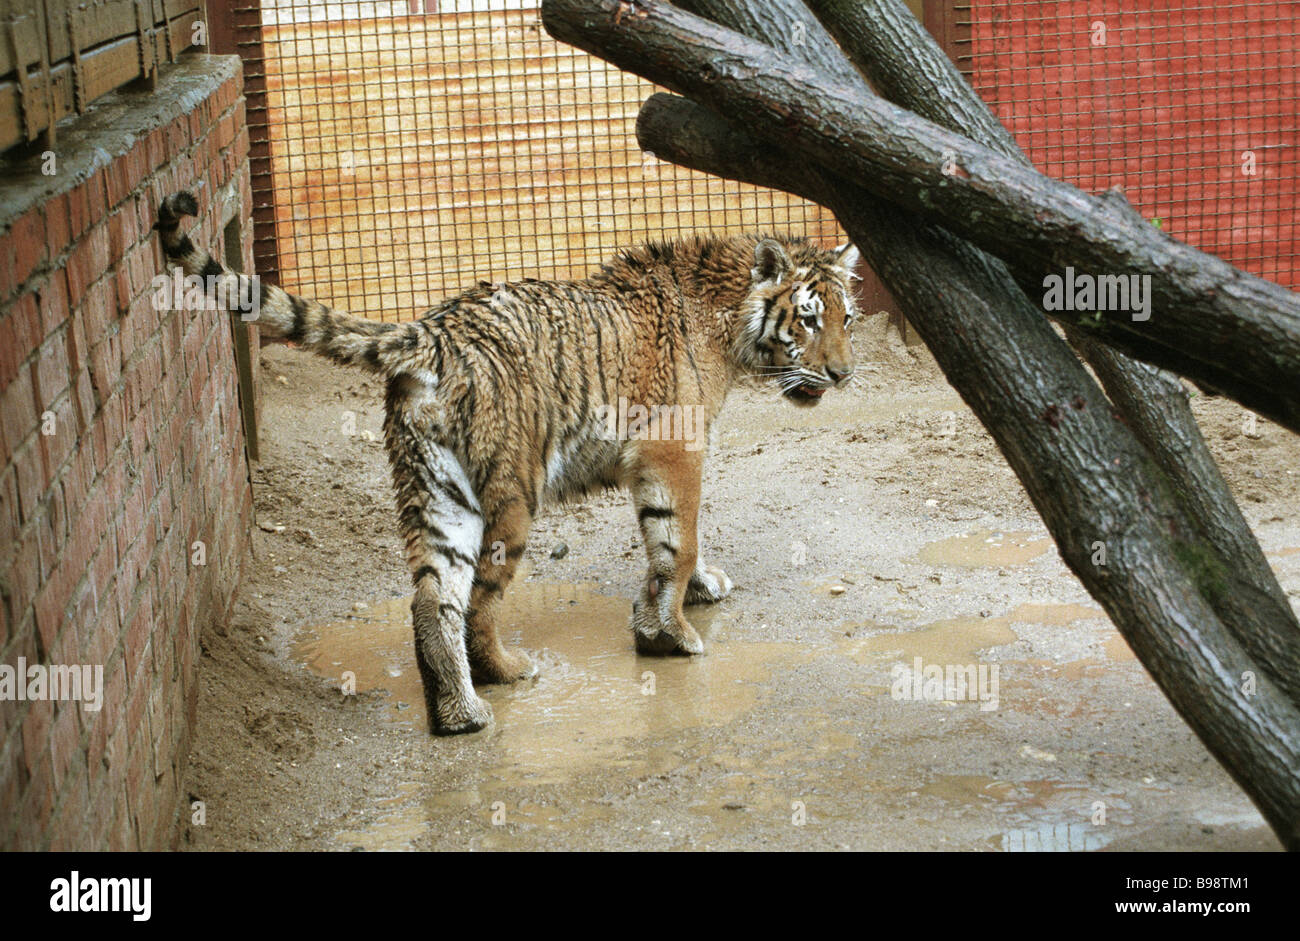 One year old tiger cub seized from photographers on the Stary Arbat street being rehabilitated in the Moscow zoo - Stock Image